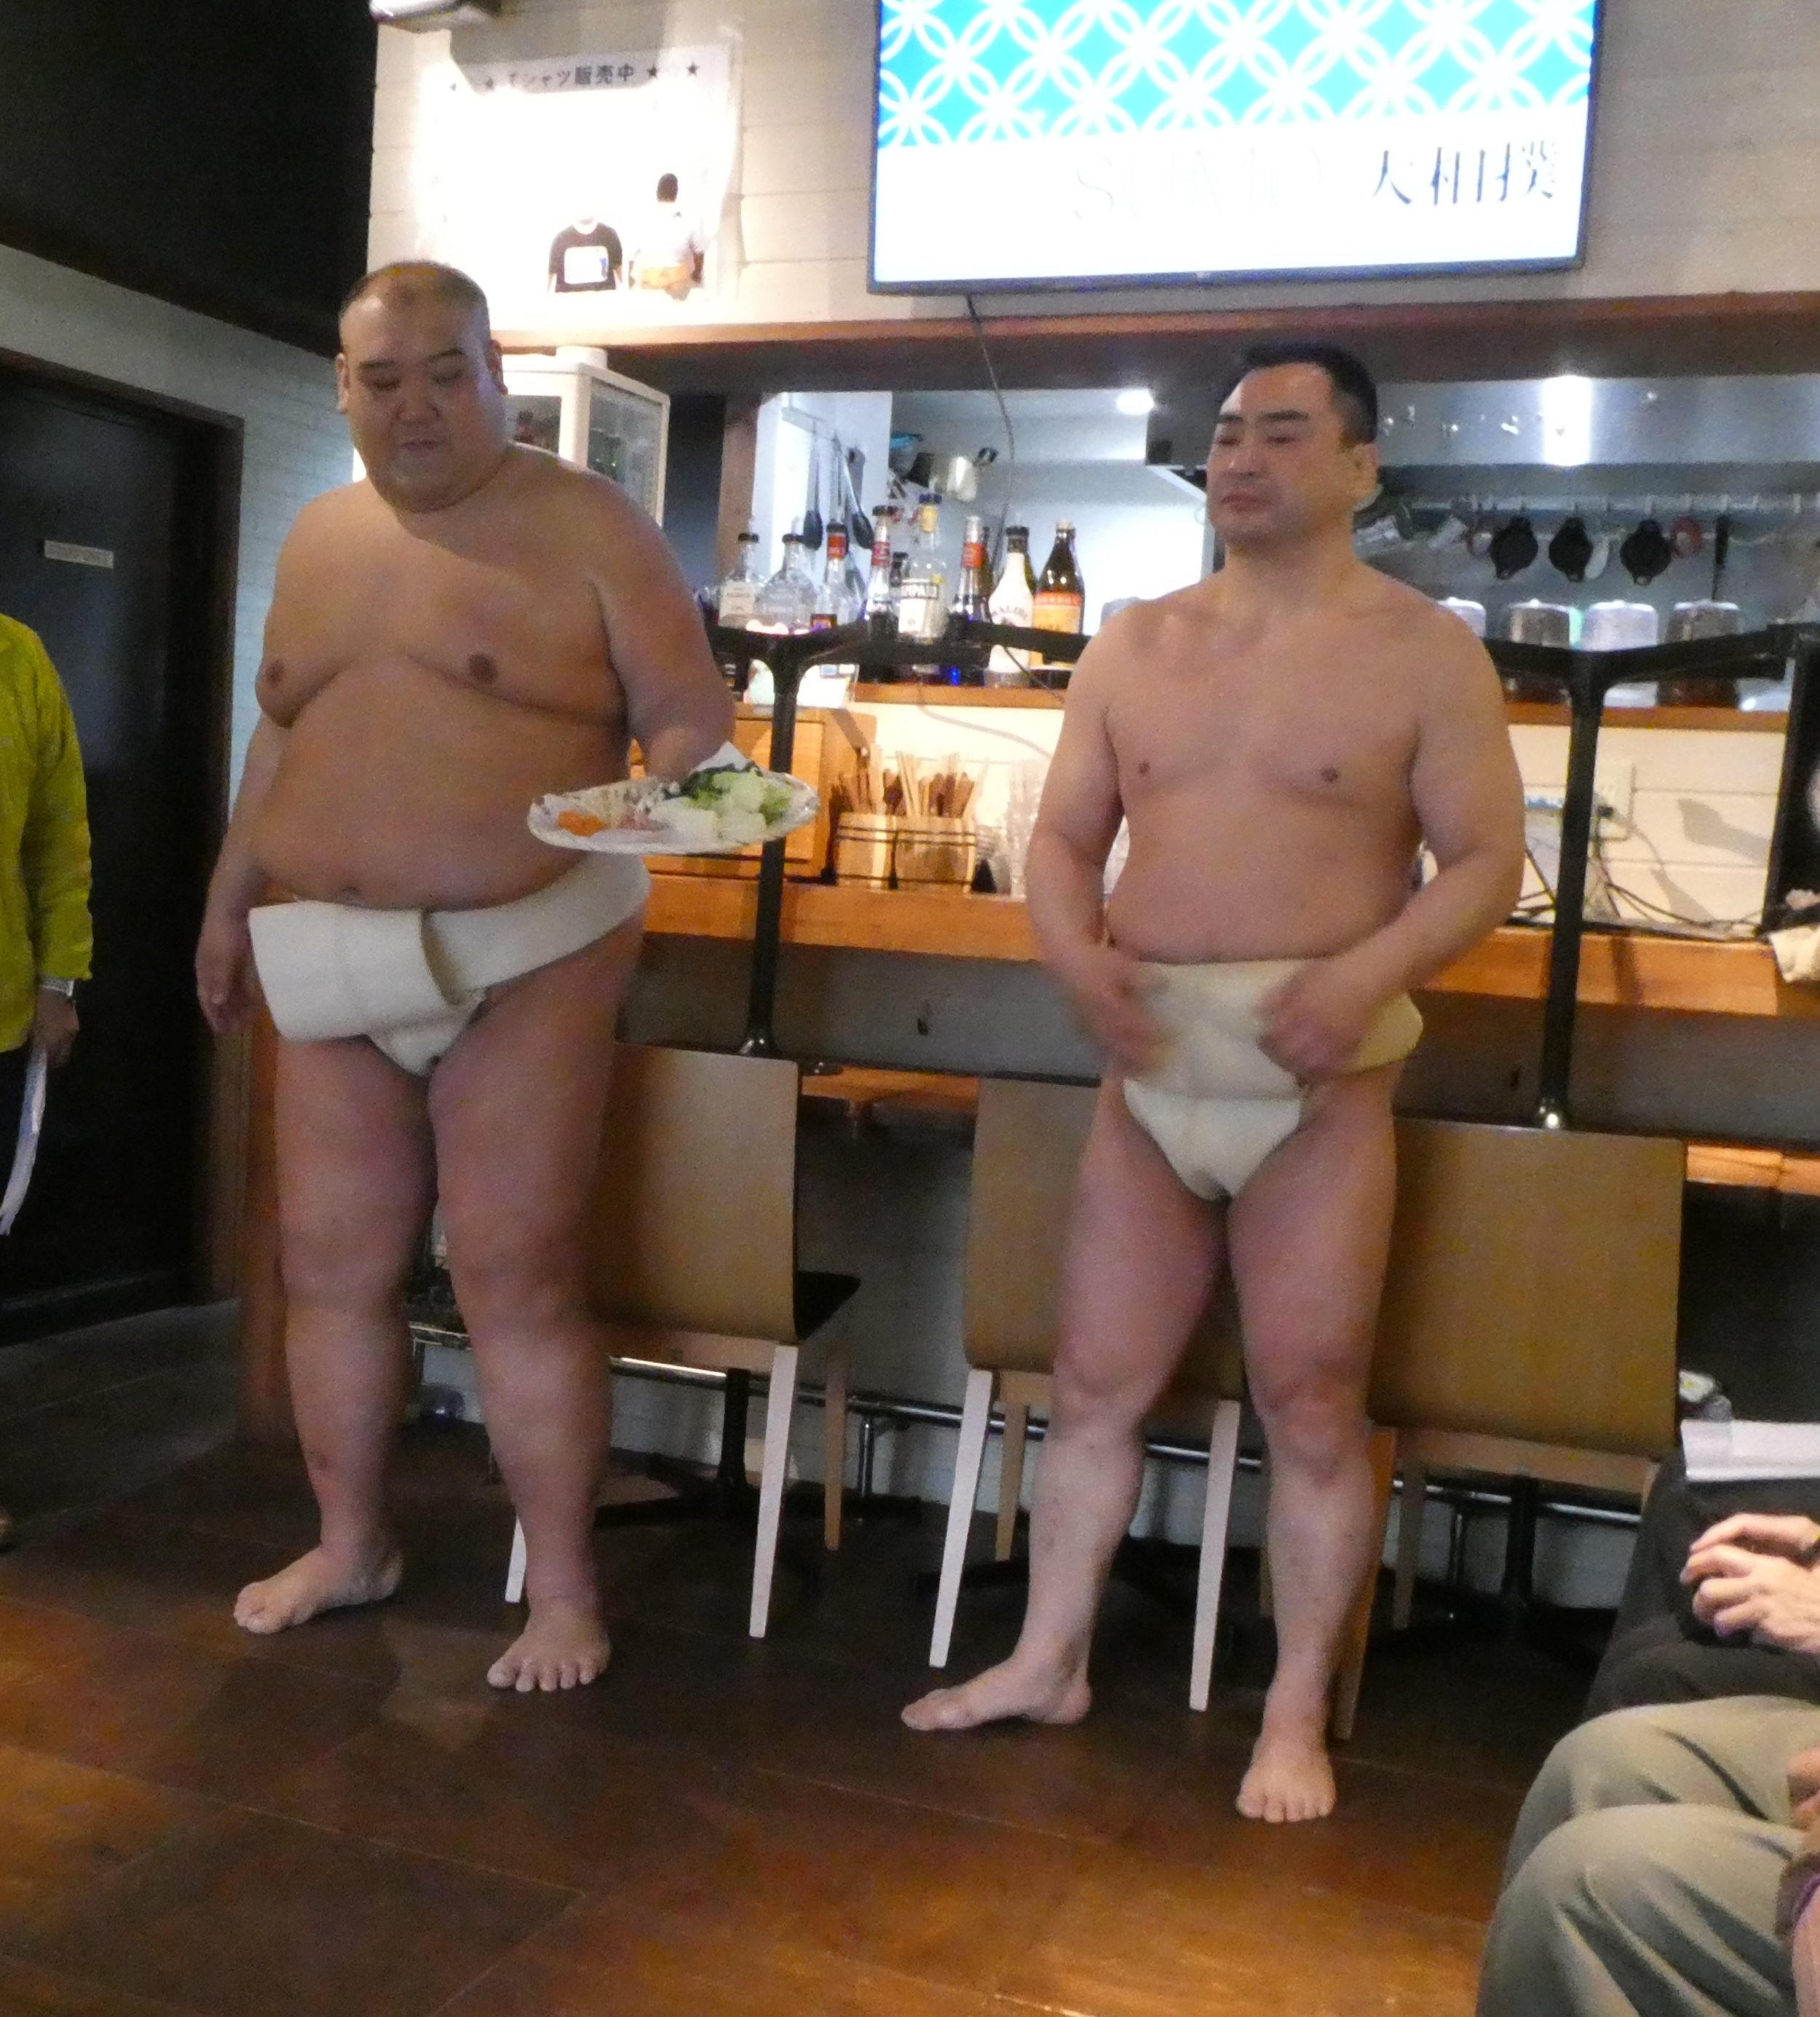 Sumo restaurant. We never knew this was a thing.